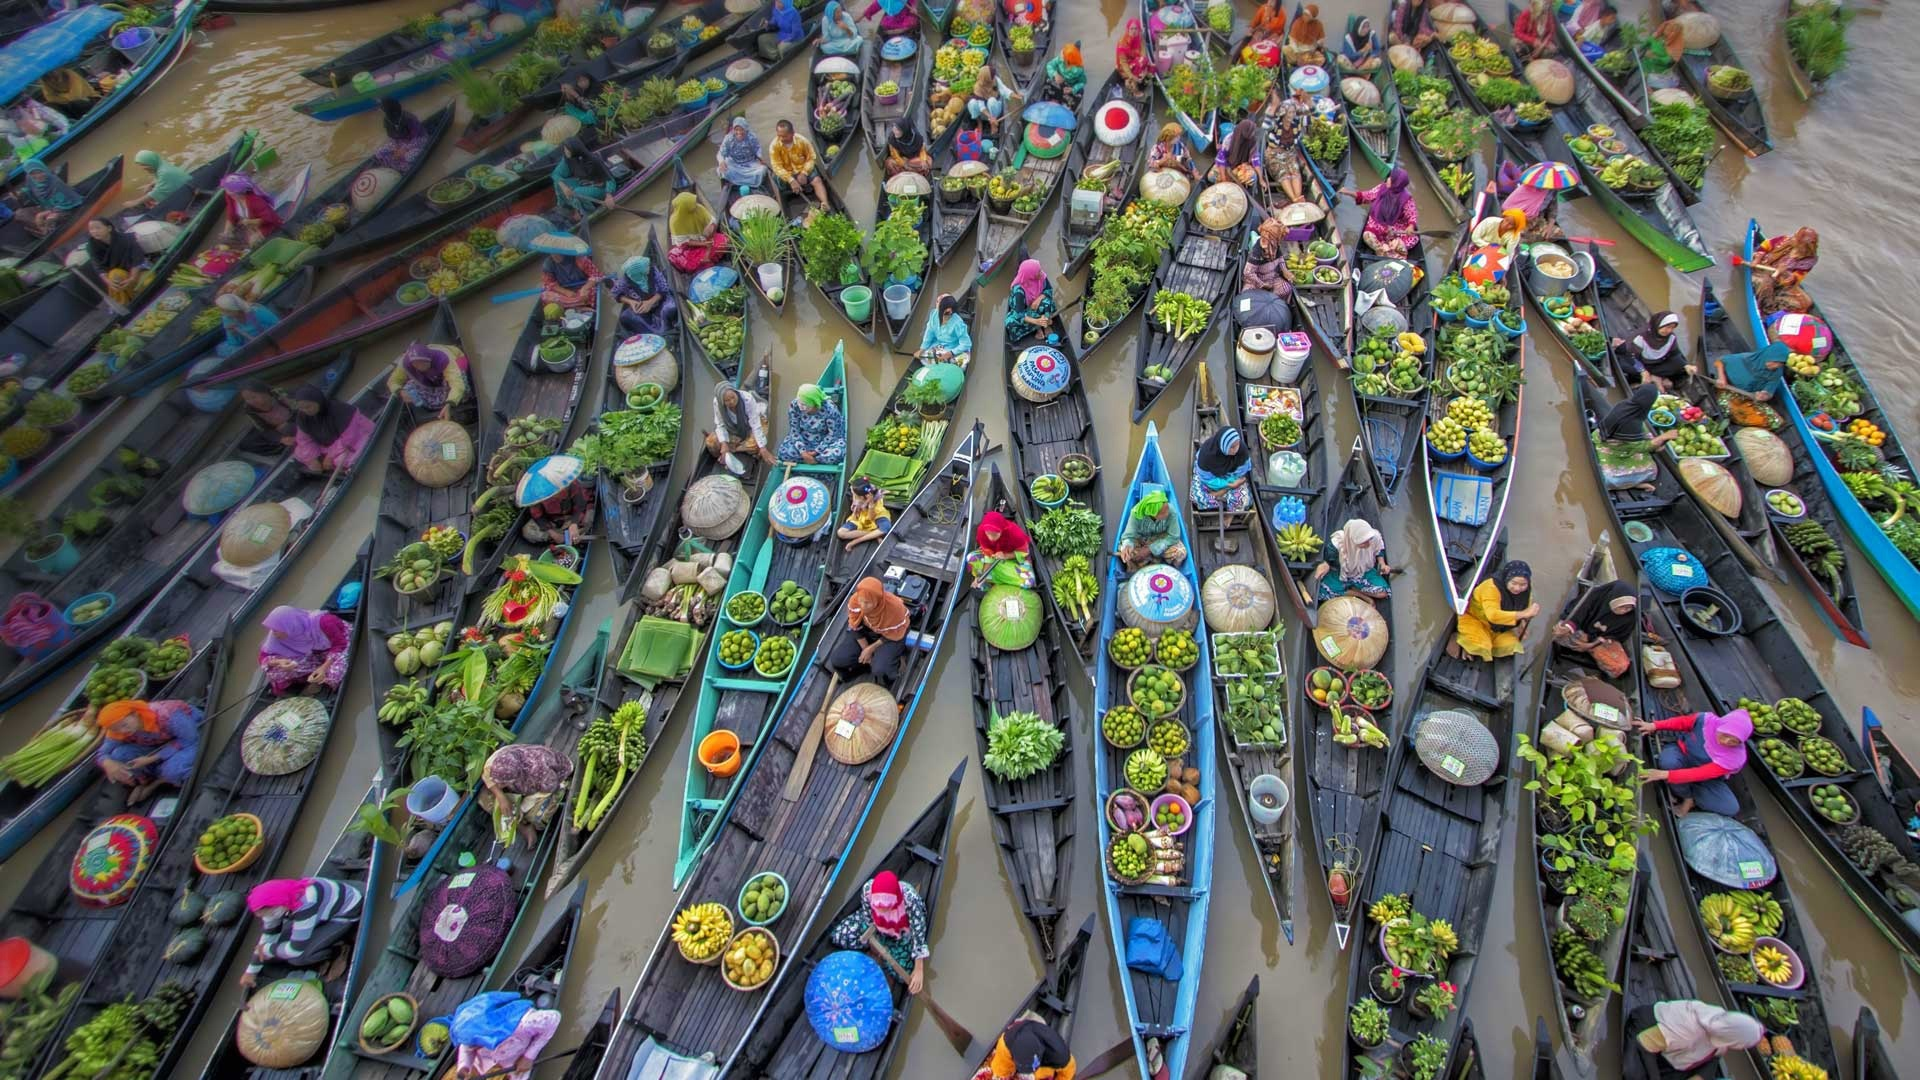 Wallpaper Indonesia floating market trade river boats 1920x1080